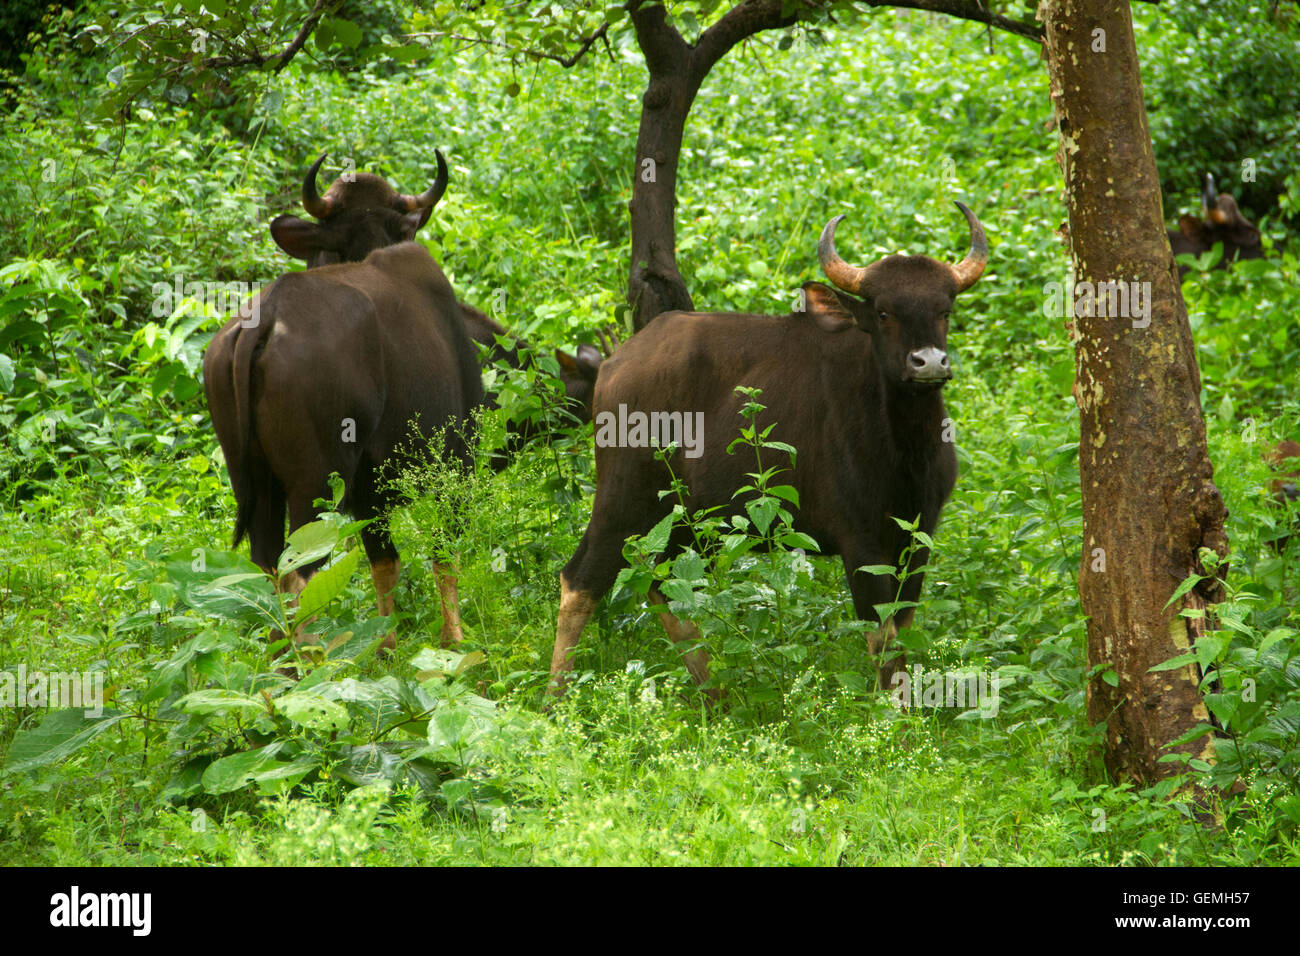 The Gaur family or the Indian Bison in lush green forest Stock Photo